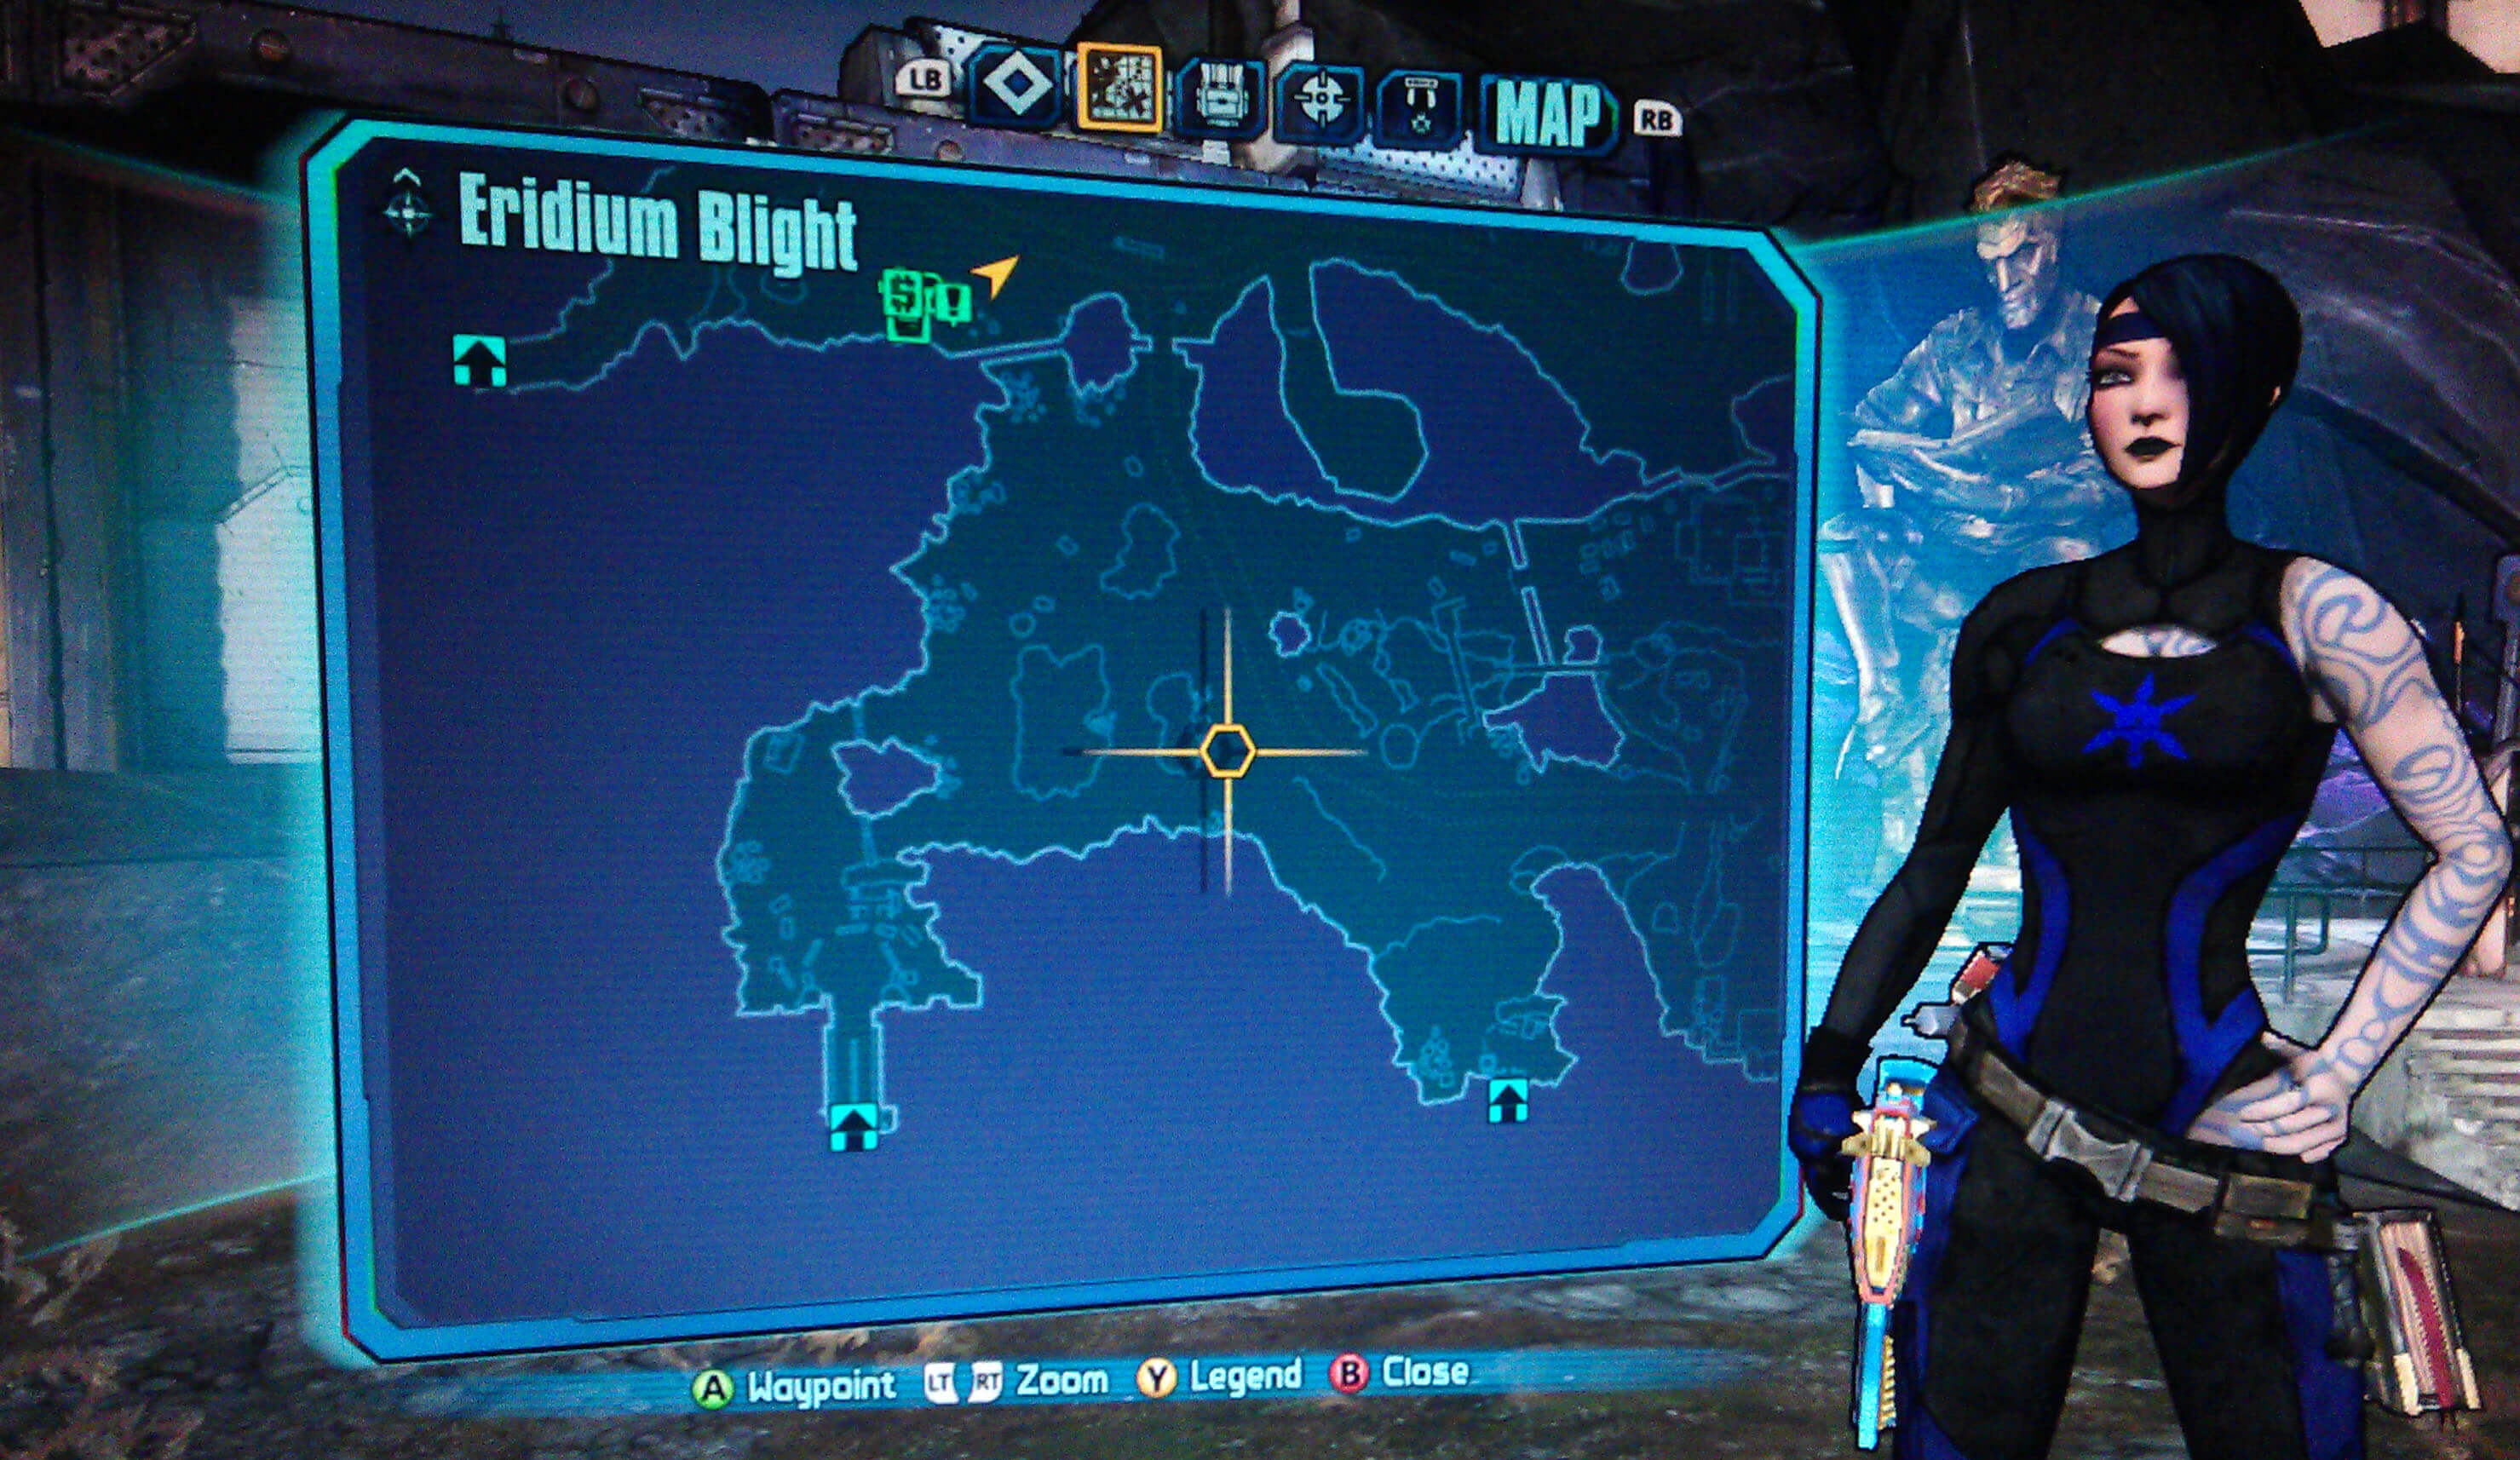 Borderlands 2 Eridium Blight Walkthrough - VGFAQ Borderlands 2 Walkthrough